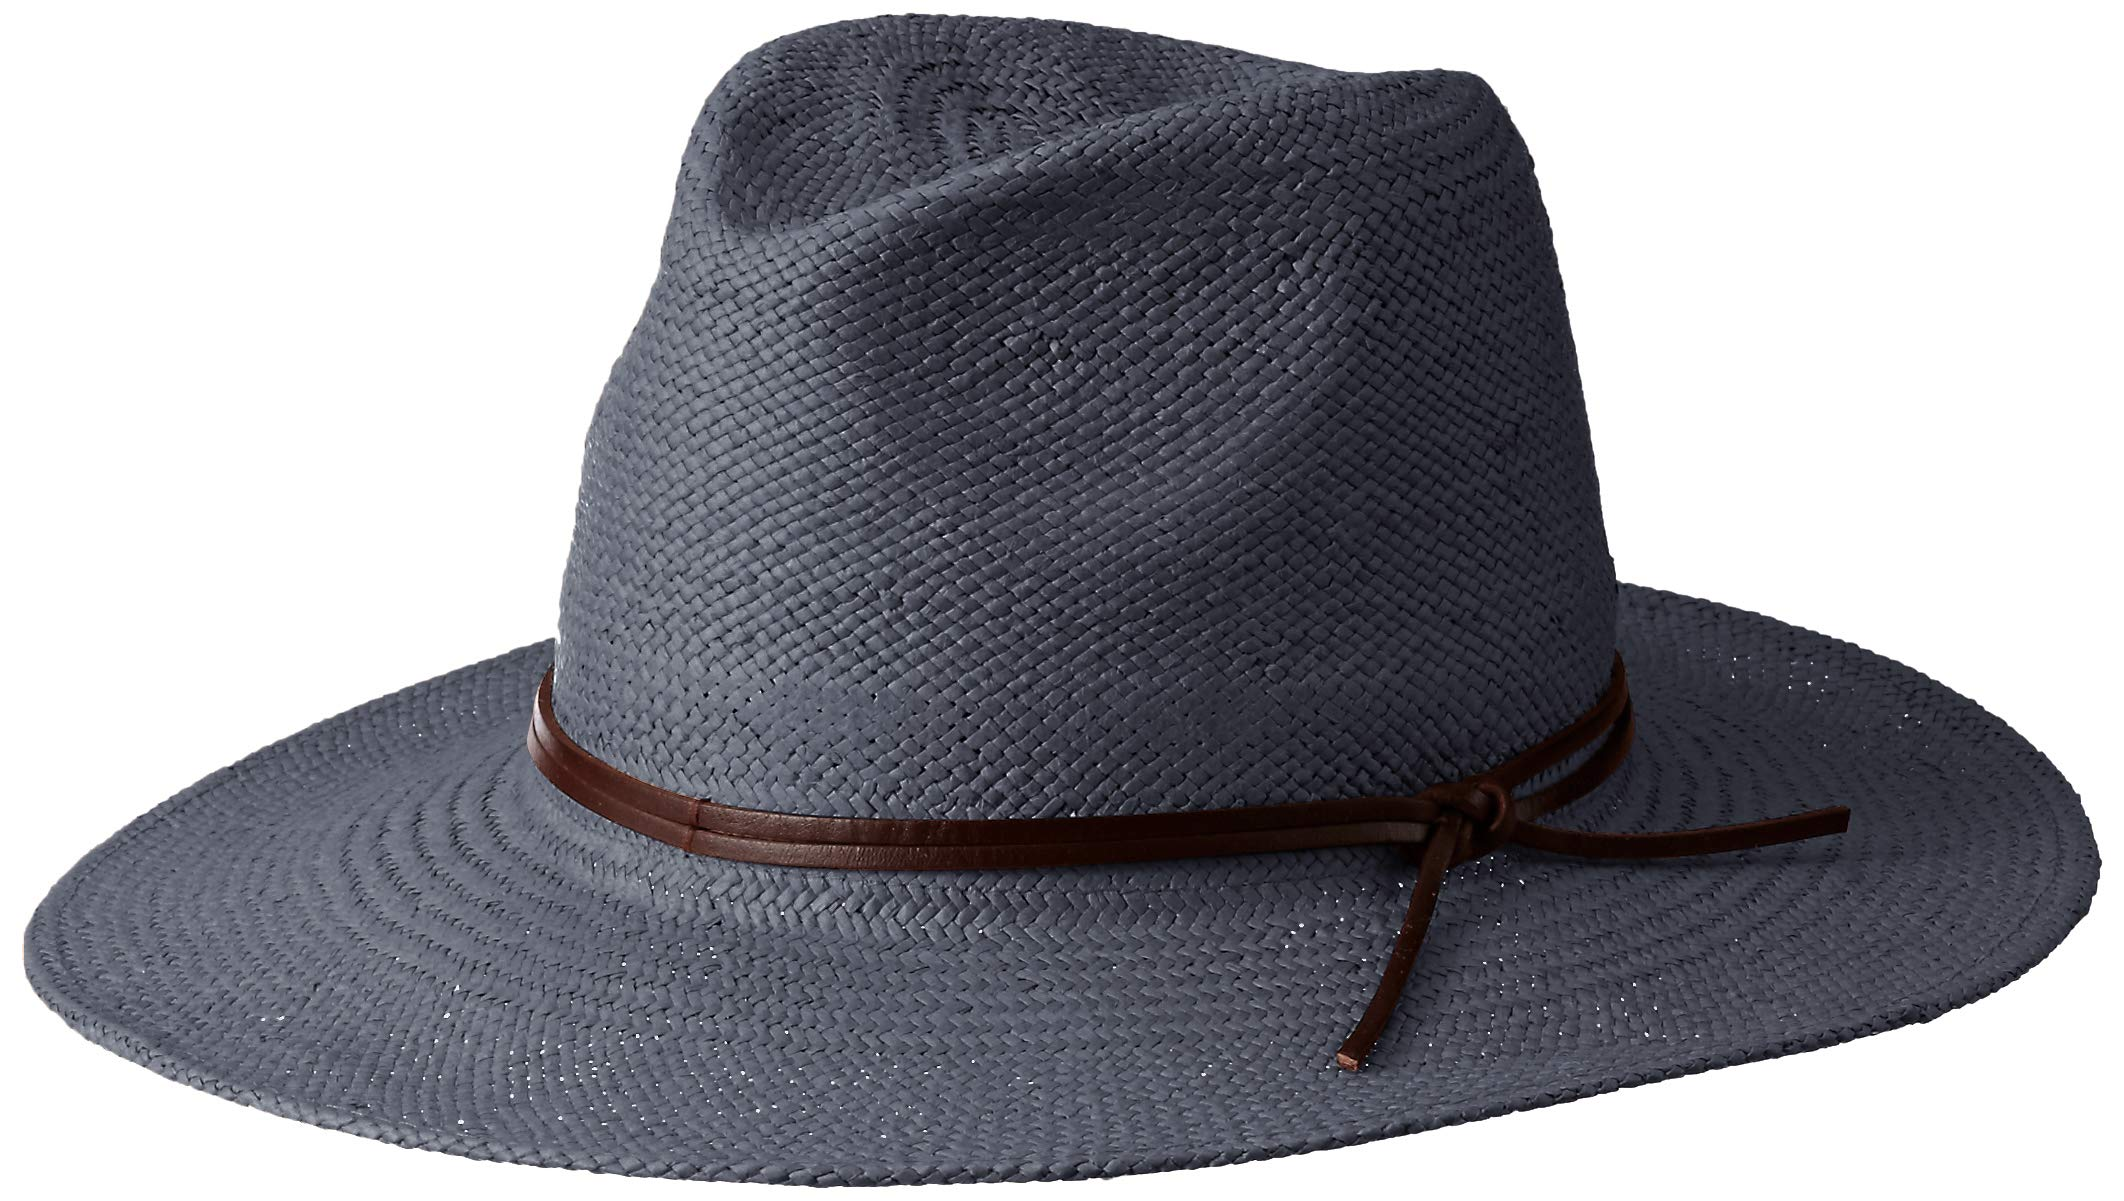 Frye Headwear Women's Frye Straw Fedora Weston, Indigo, Small/Medium